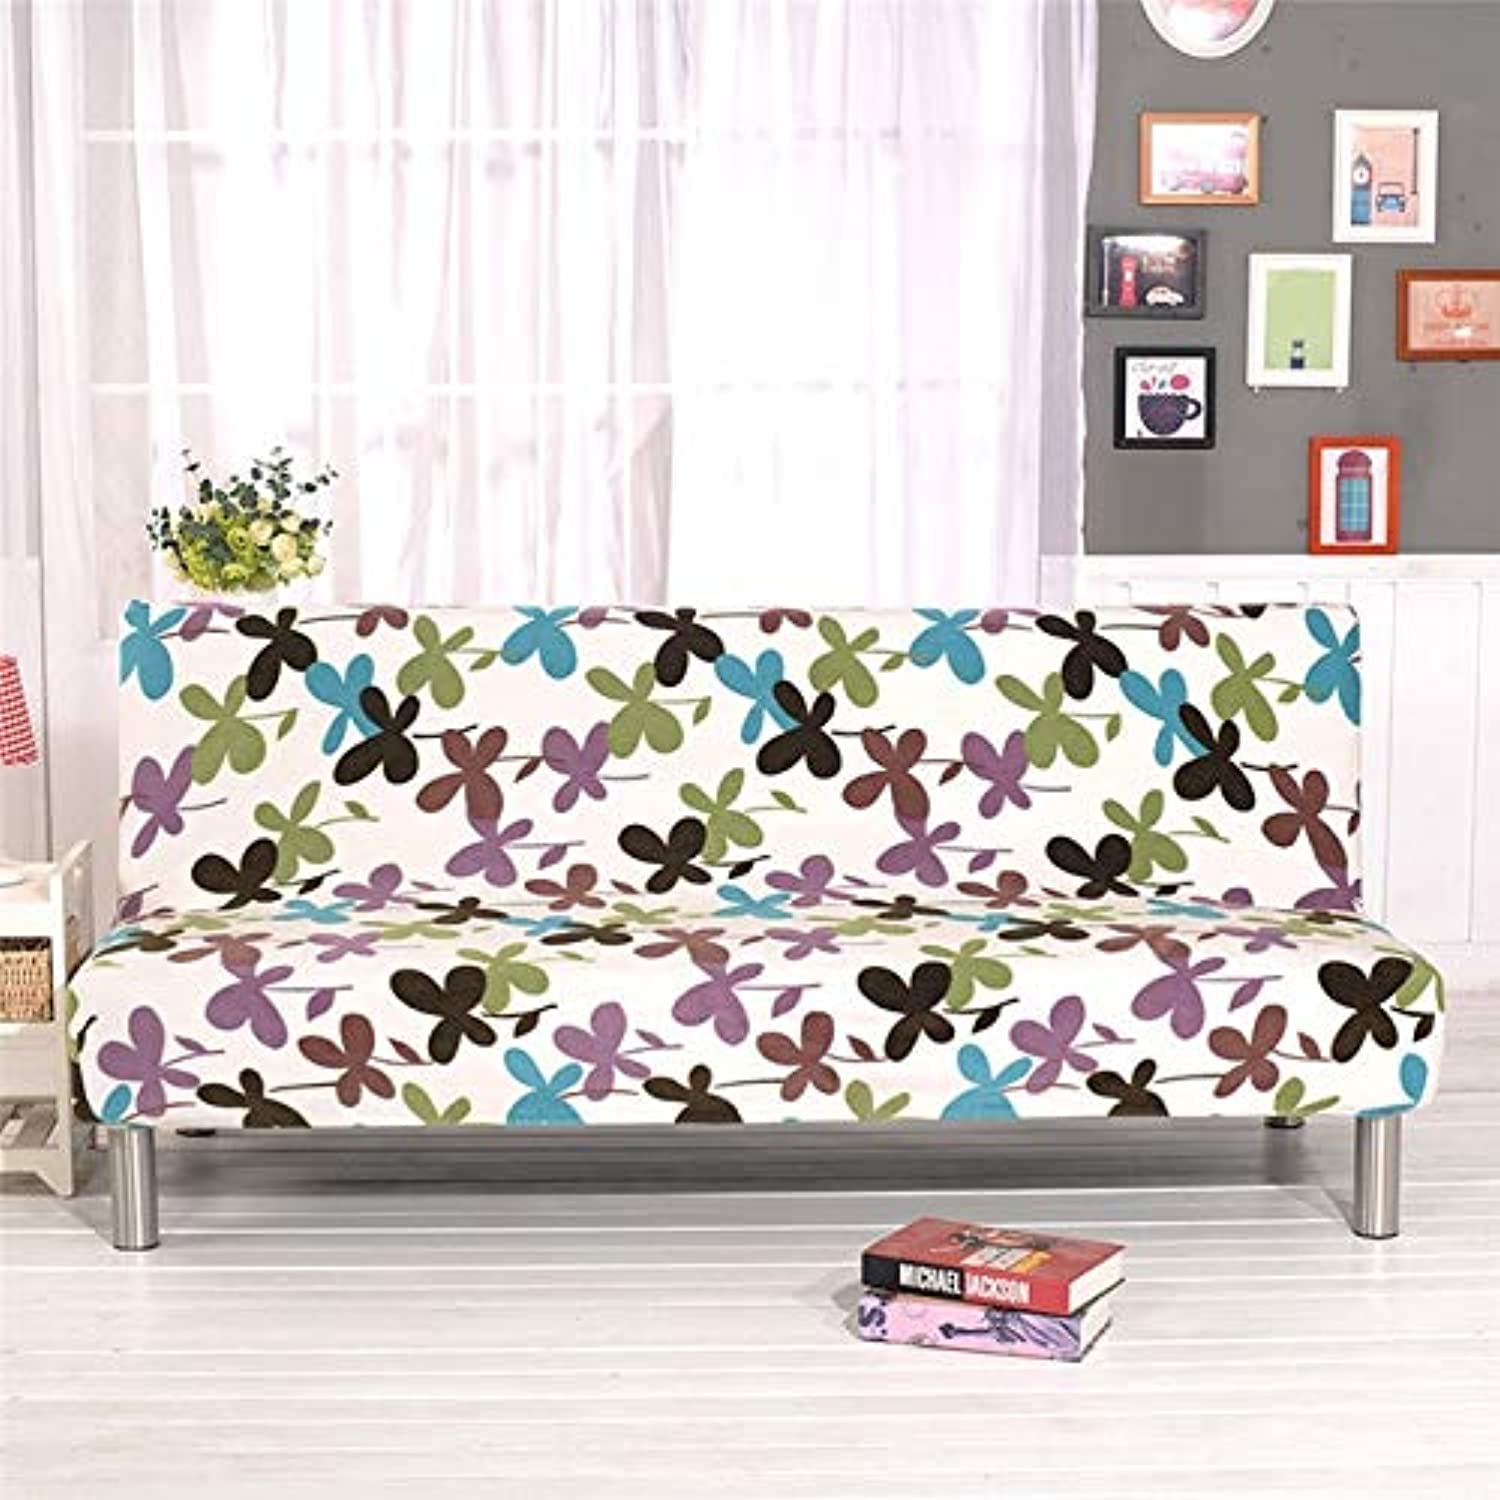 Farmerly All-Inclusive Sofa Couch Cover Foldable Stretch Slipcover Cushion Case Slip-Resistant Sofa Cover Jacquard Sofa Bed Cover   11, S Width 45-55cm